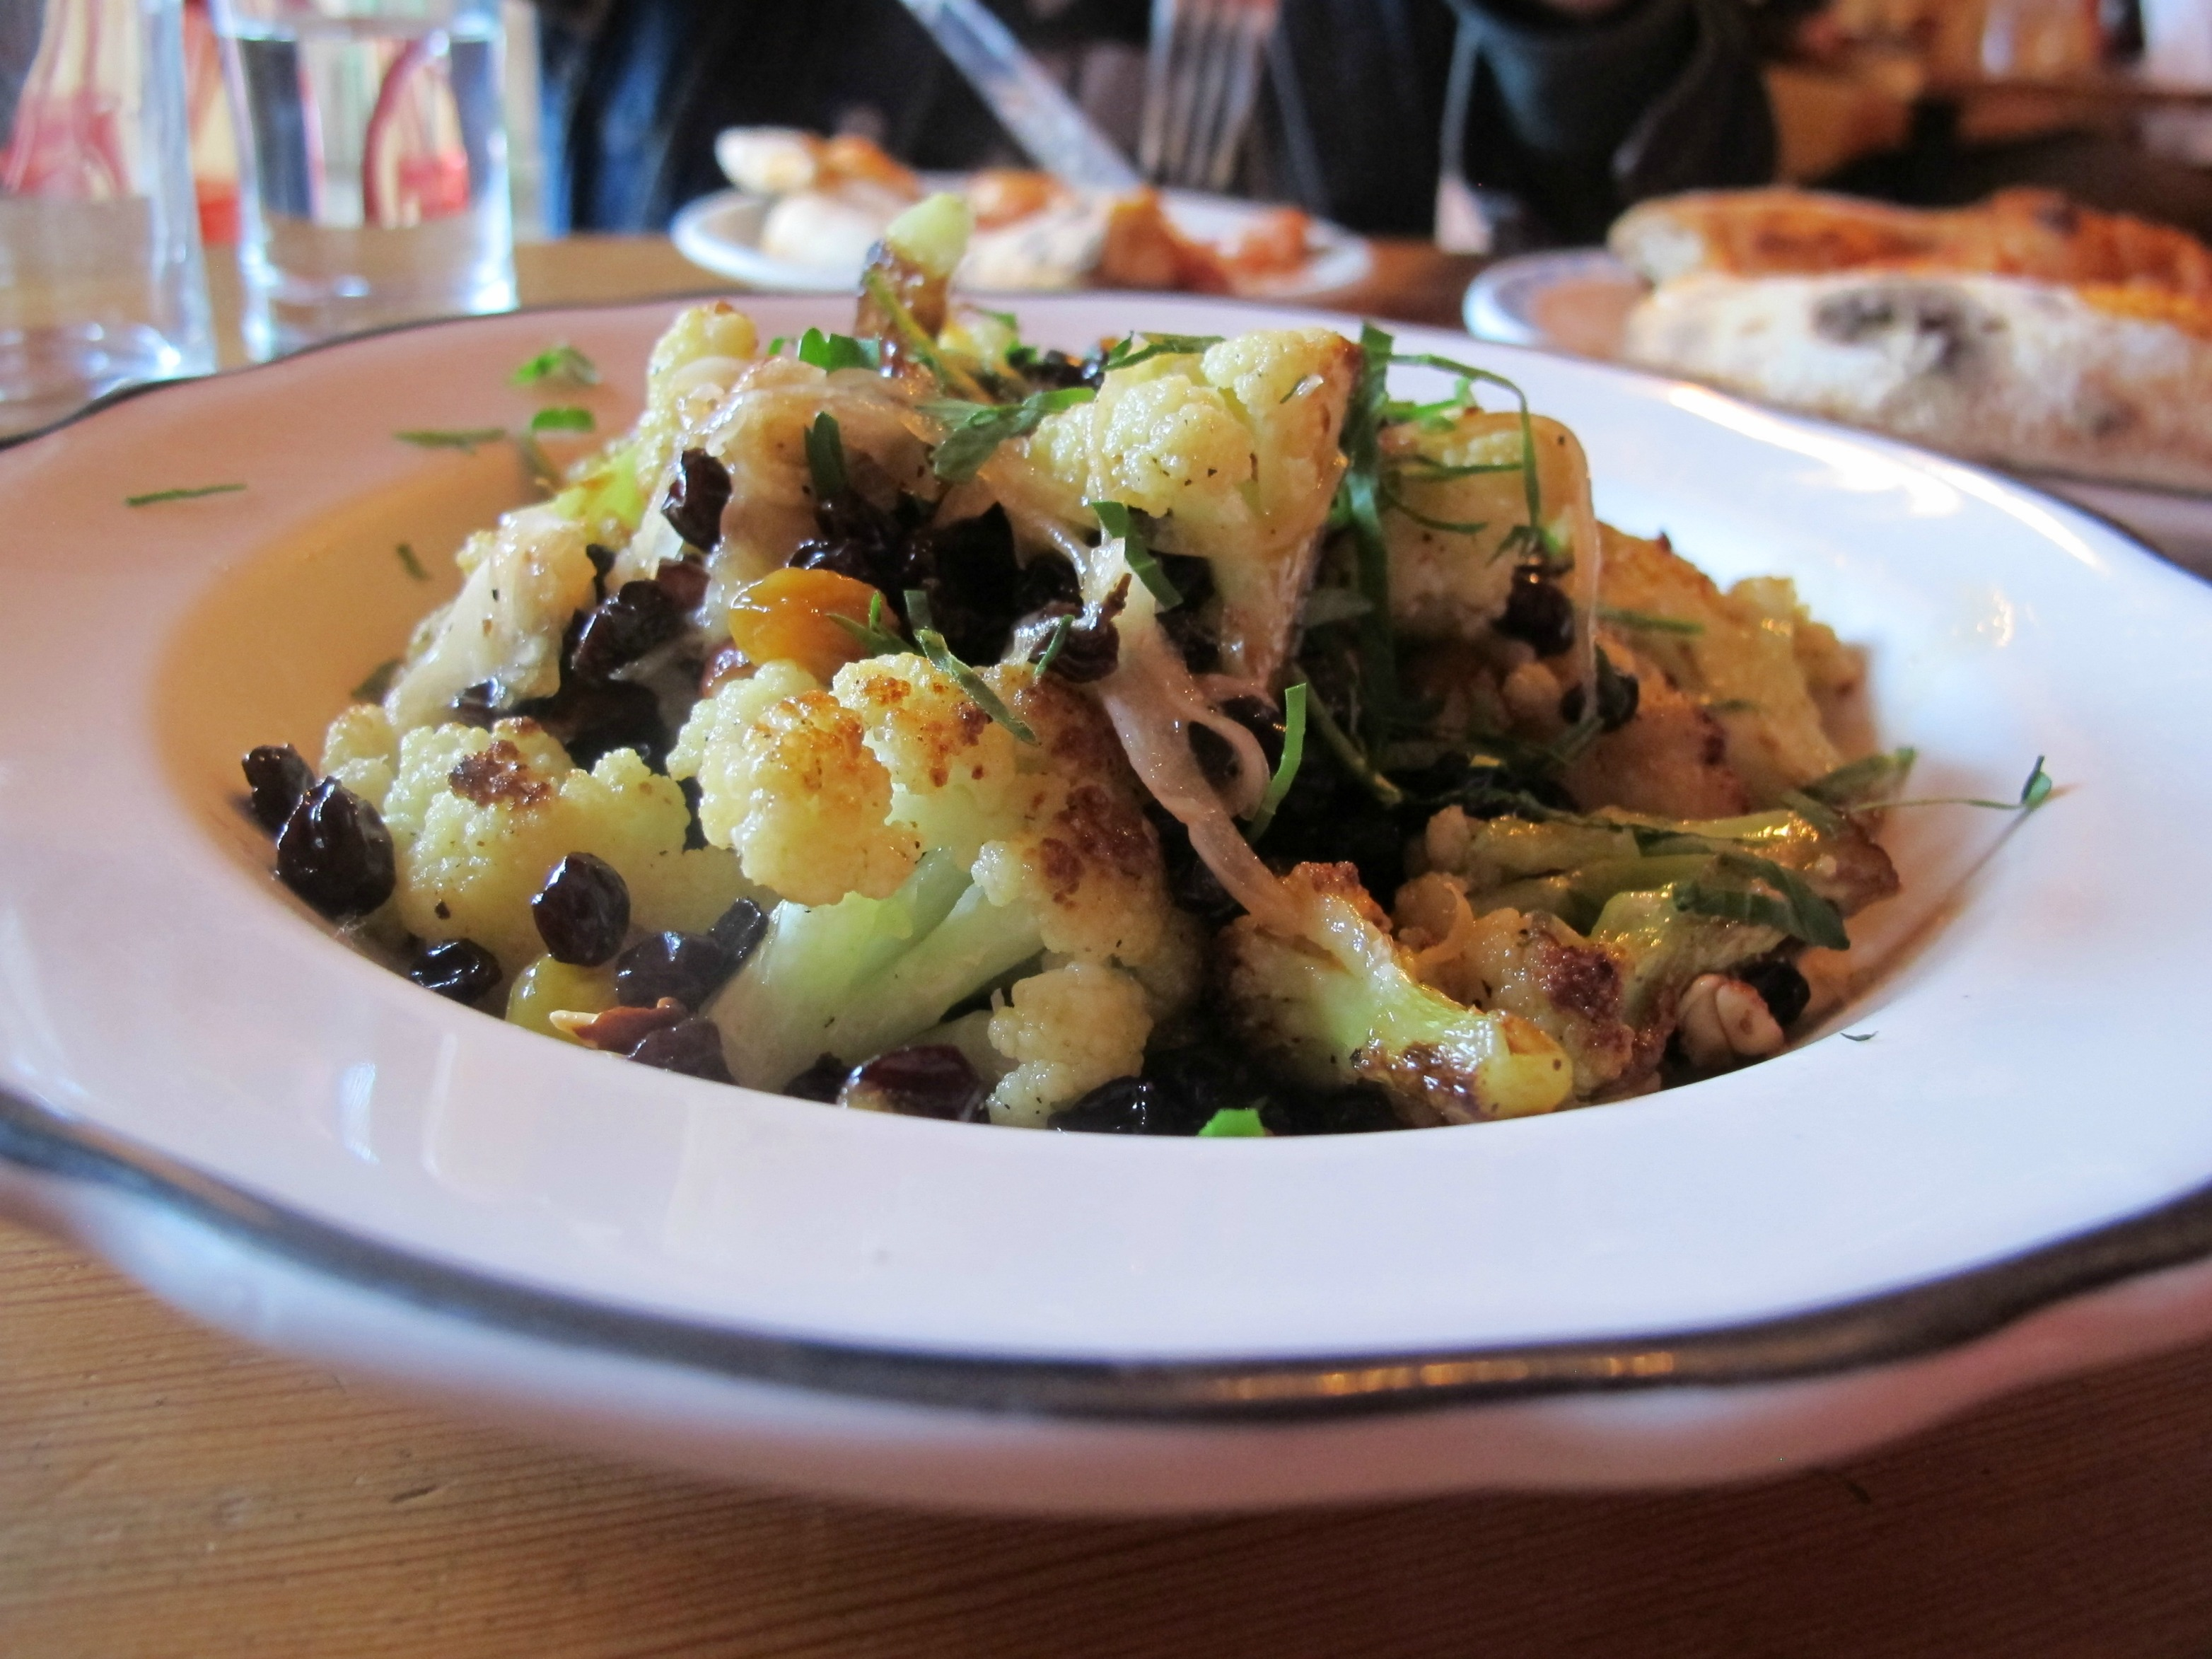 Cauliflower appetizer from Lovely's Fifty Fifty in Portland, Oregon \ vegetarianPDX